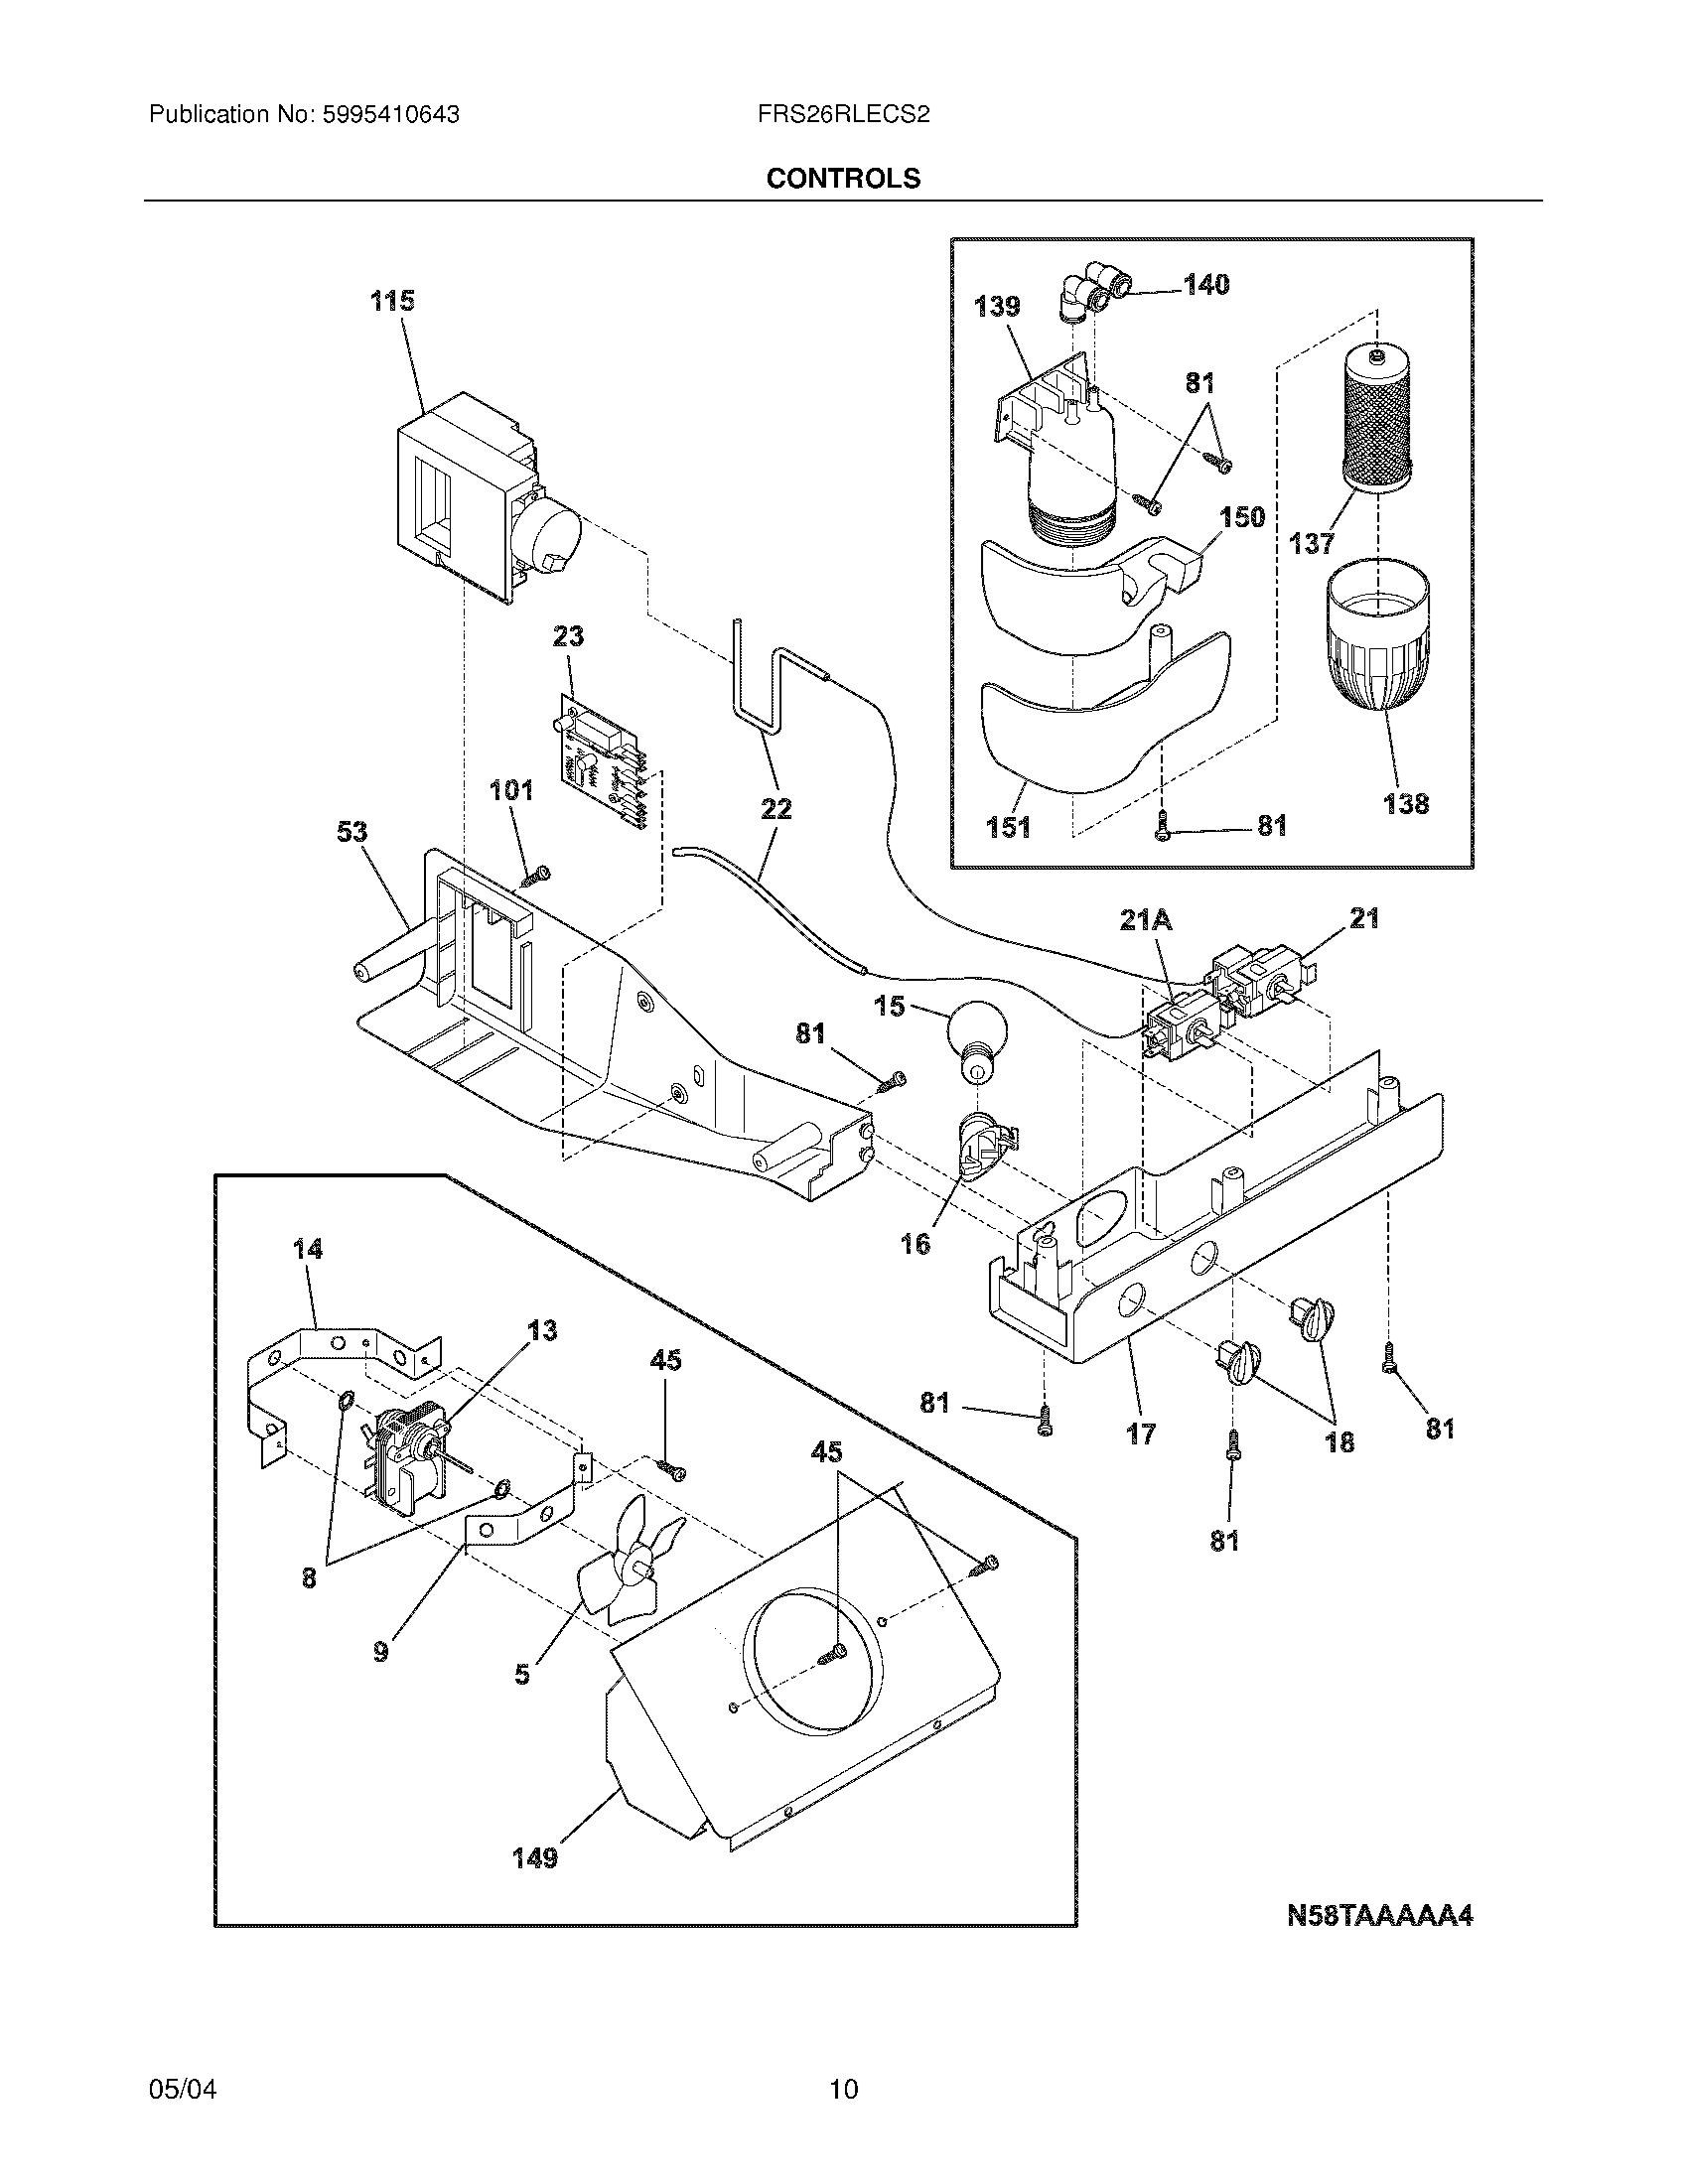 Dyson Washing Machine Wiring Diagram Will Be A Thing Kirby Electrolux Vacuum Cleaner Whirlpool Top Load Schematics Maytag